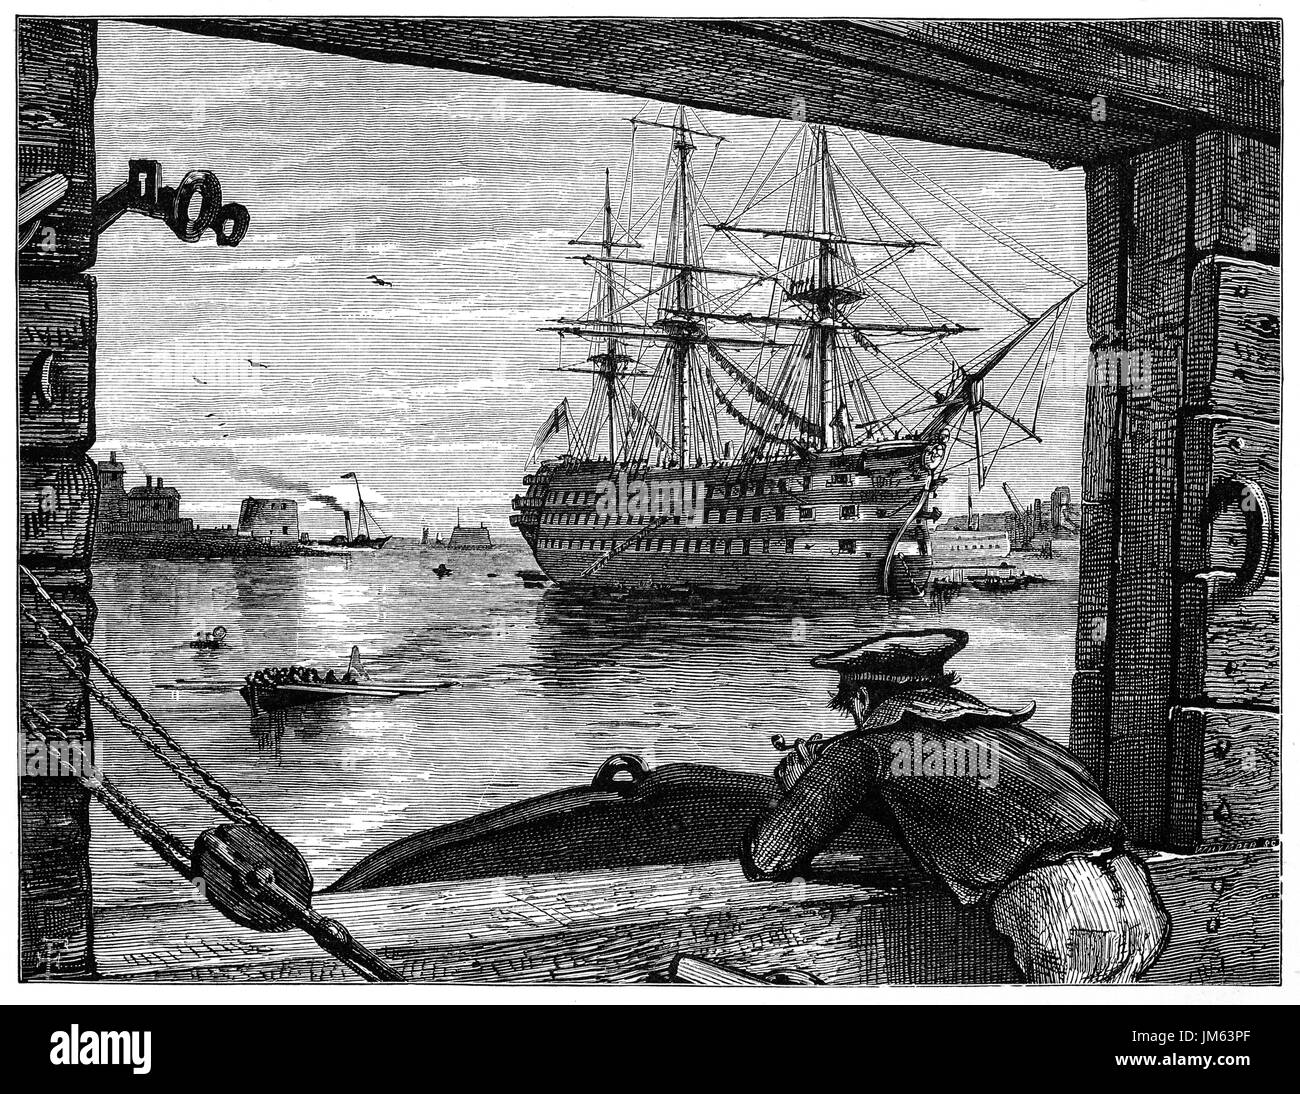 1870: 1870: An old tar (sailor) viewing HMS Victory in Portsmouth Harbour off Gosport. She is a 104-gun first-rate ship of the line of the Royal Navy, ordered in 1758, laid down in 1759 and launched in 1765. She is best known for her role as Lord Nelson's flagship at the Battle of Trafalgar in 1805. Hampshire, England. - Stock Image